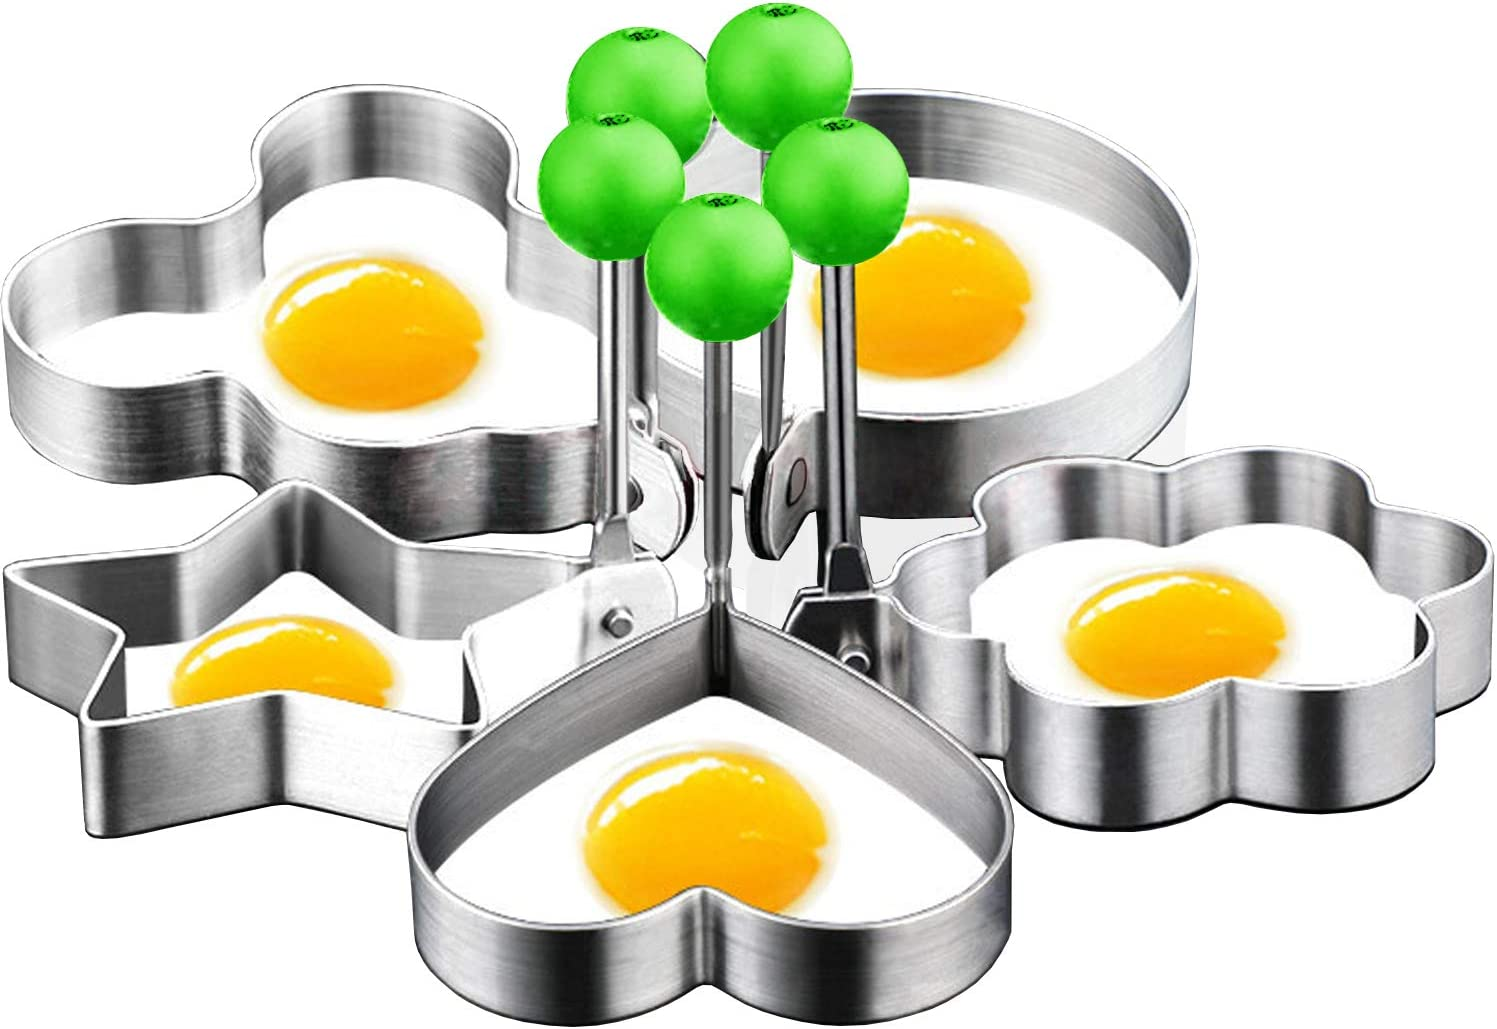 DYKL Eggs Rings for Frying Or Shaping Eggs,Food Grade Egg Cooking Rings,Stainless Steel Fried Egg Mold,Pancake Rings,Fried Egg Ring Mold (5Pack)